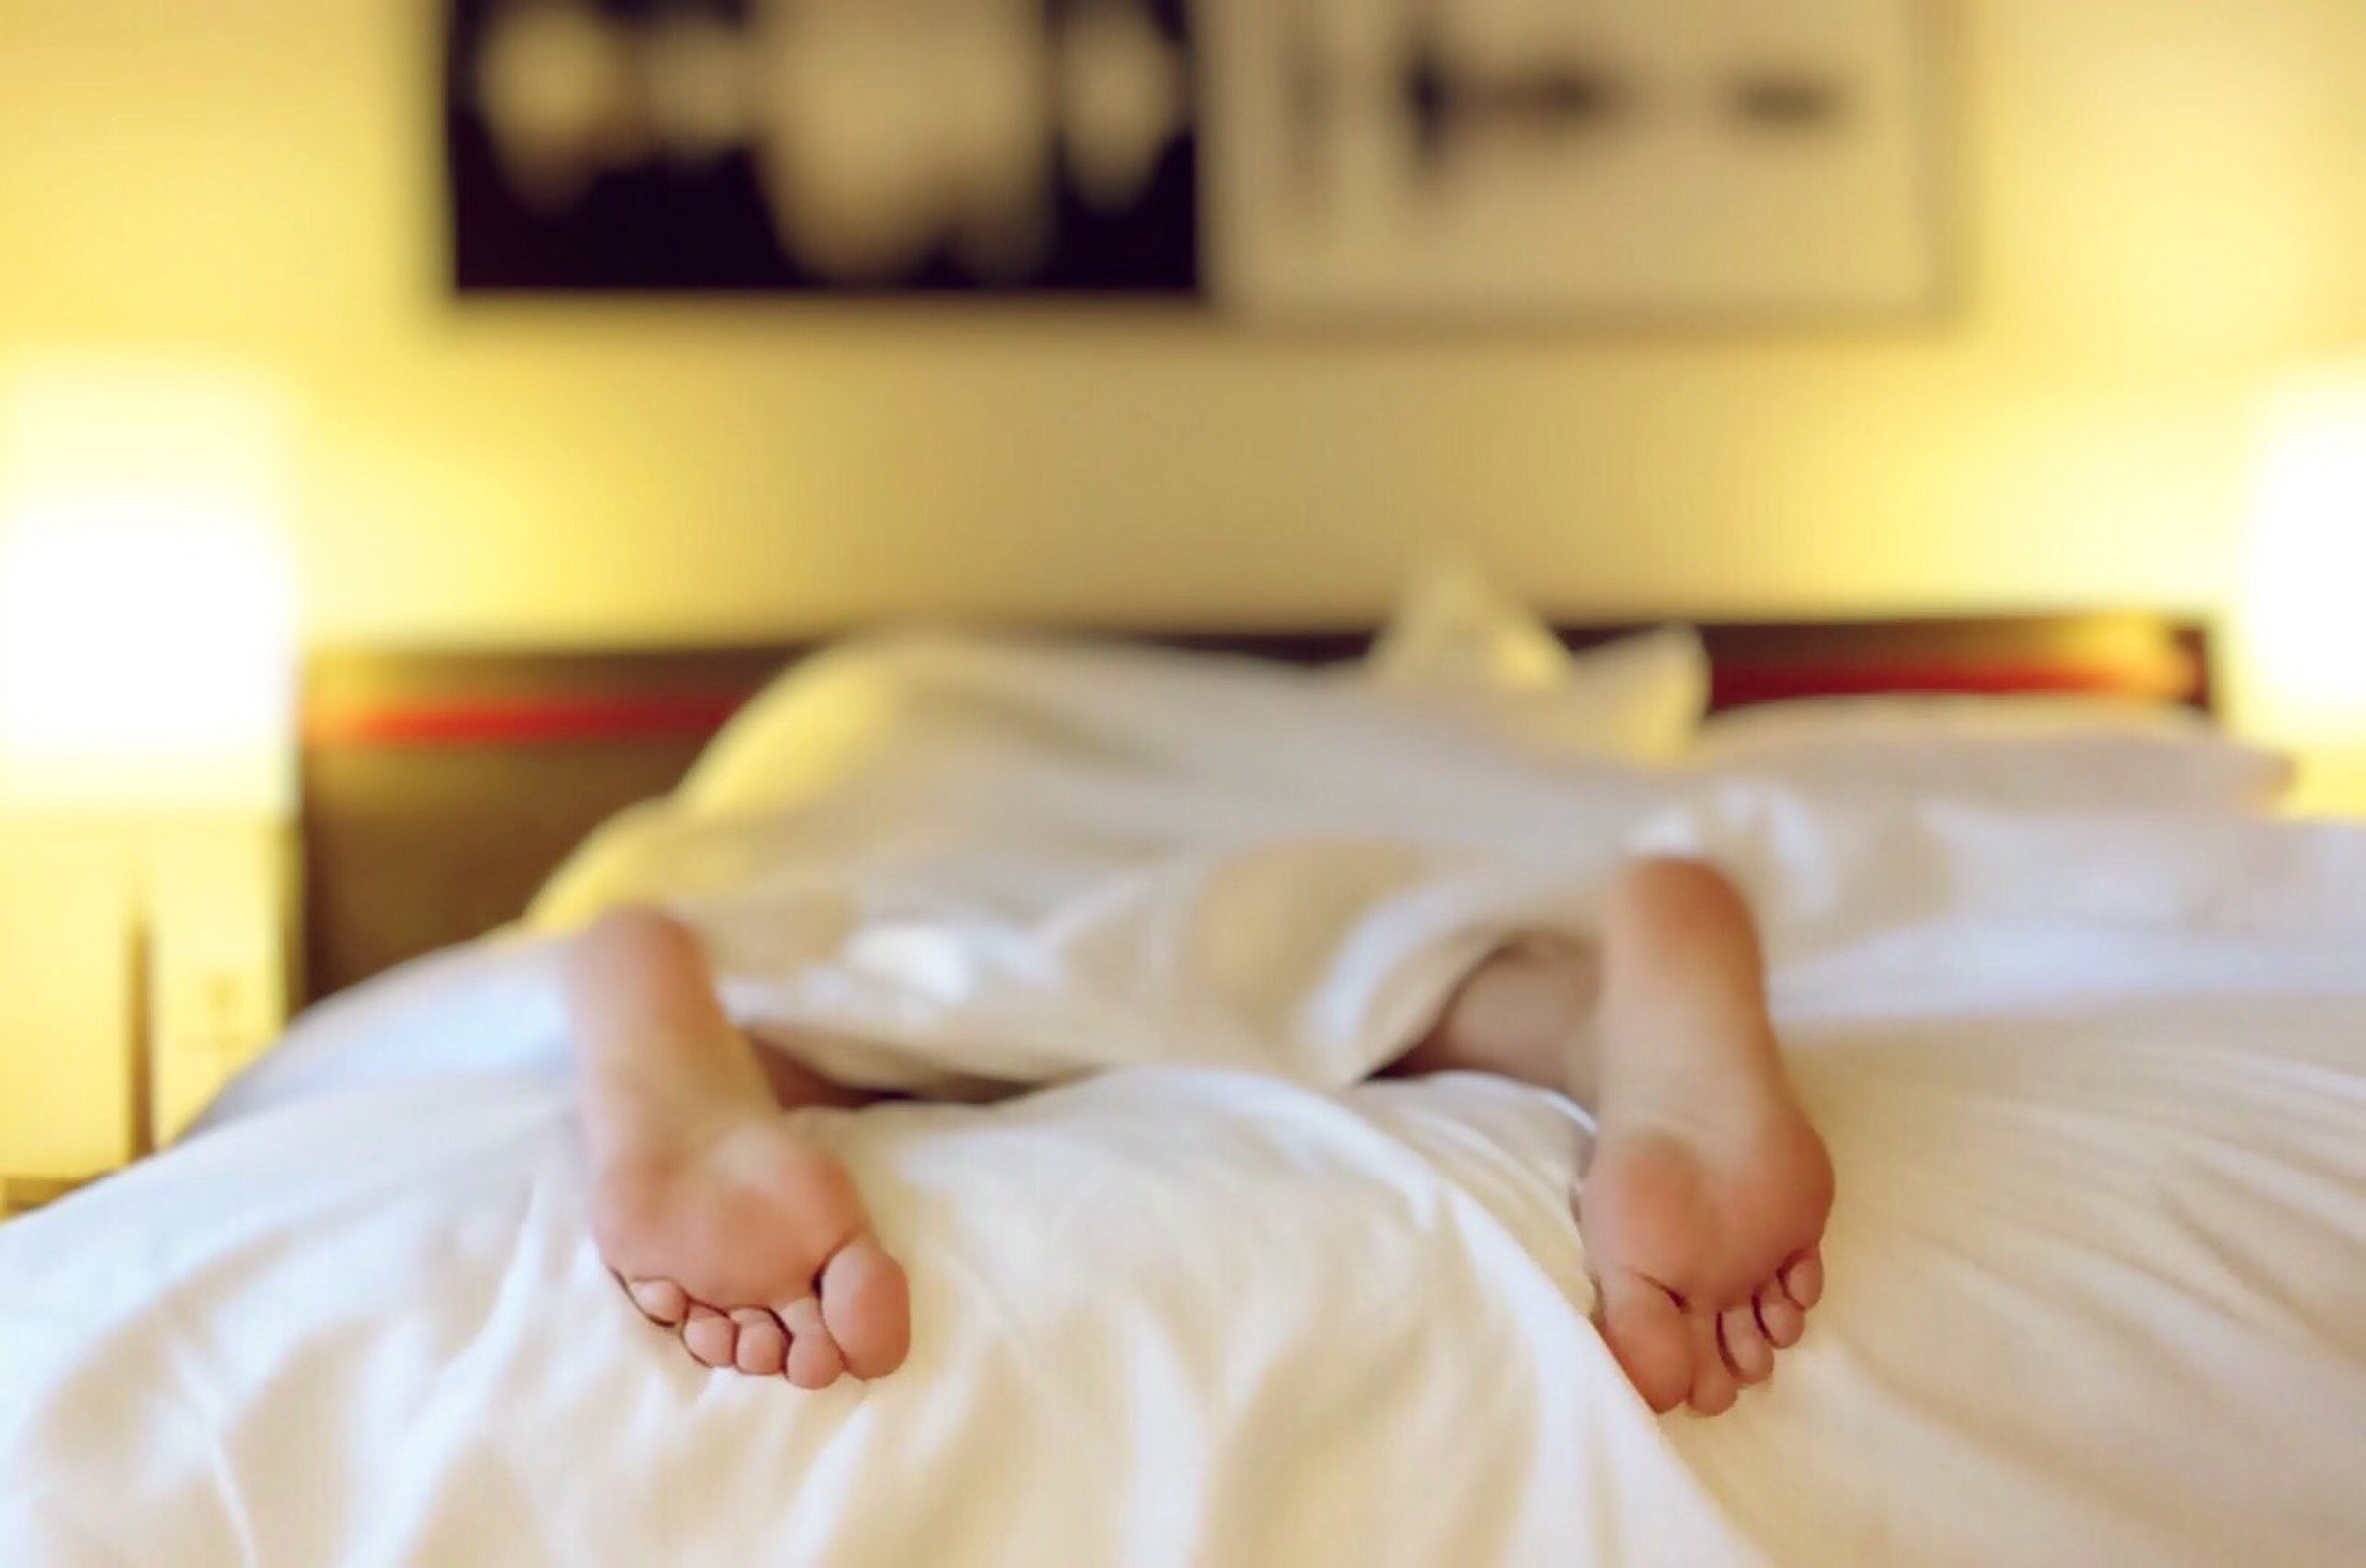 Person Lying on Bed Covering White Blanket · Free Stock Photo